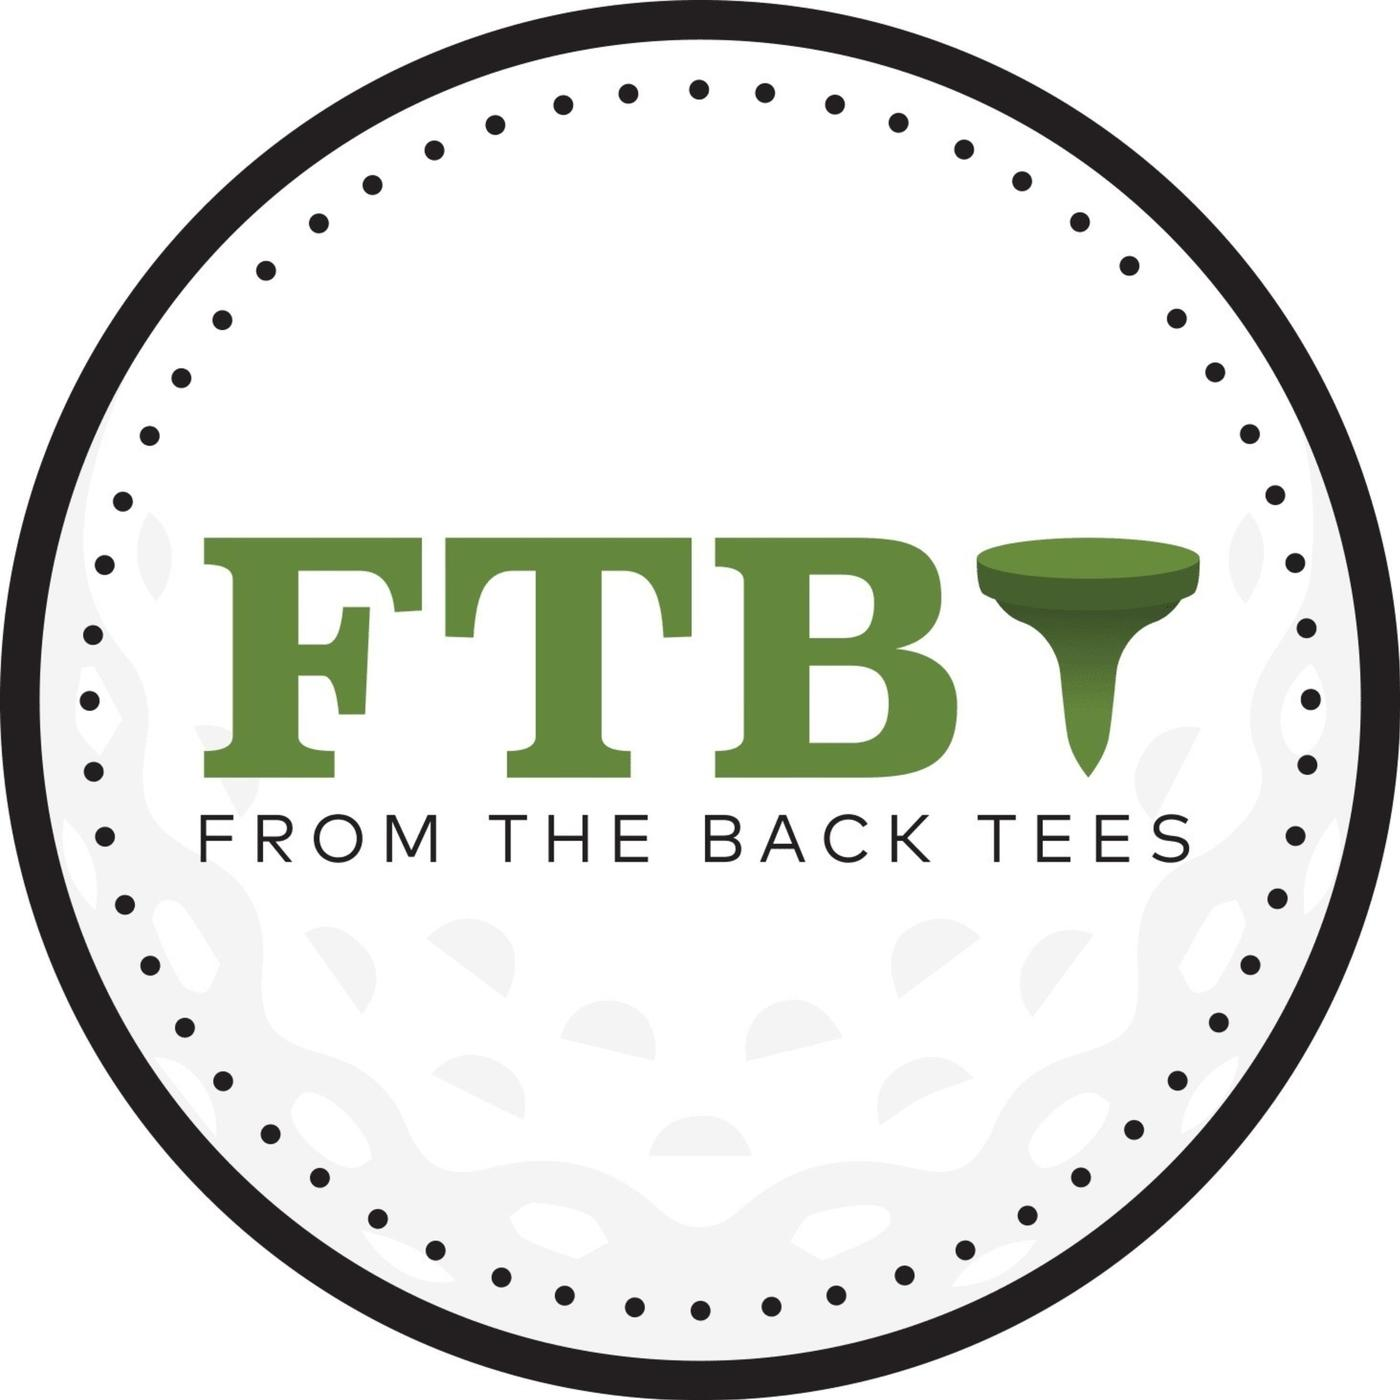 From the Back Tees (podcast) - Michigan Sports and